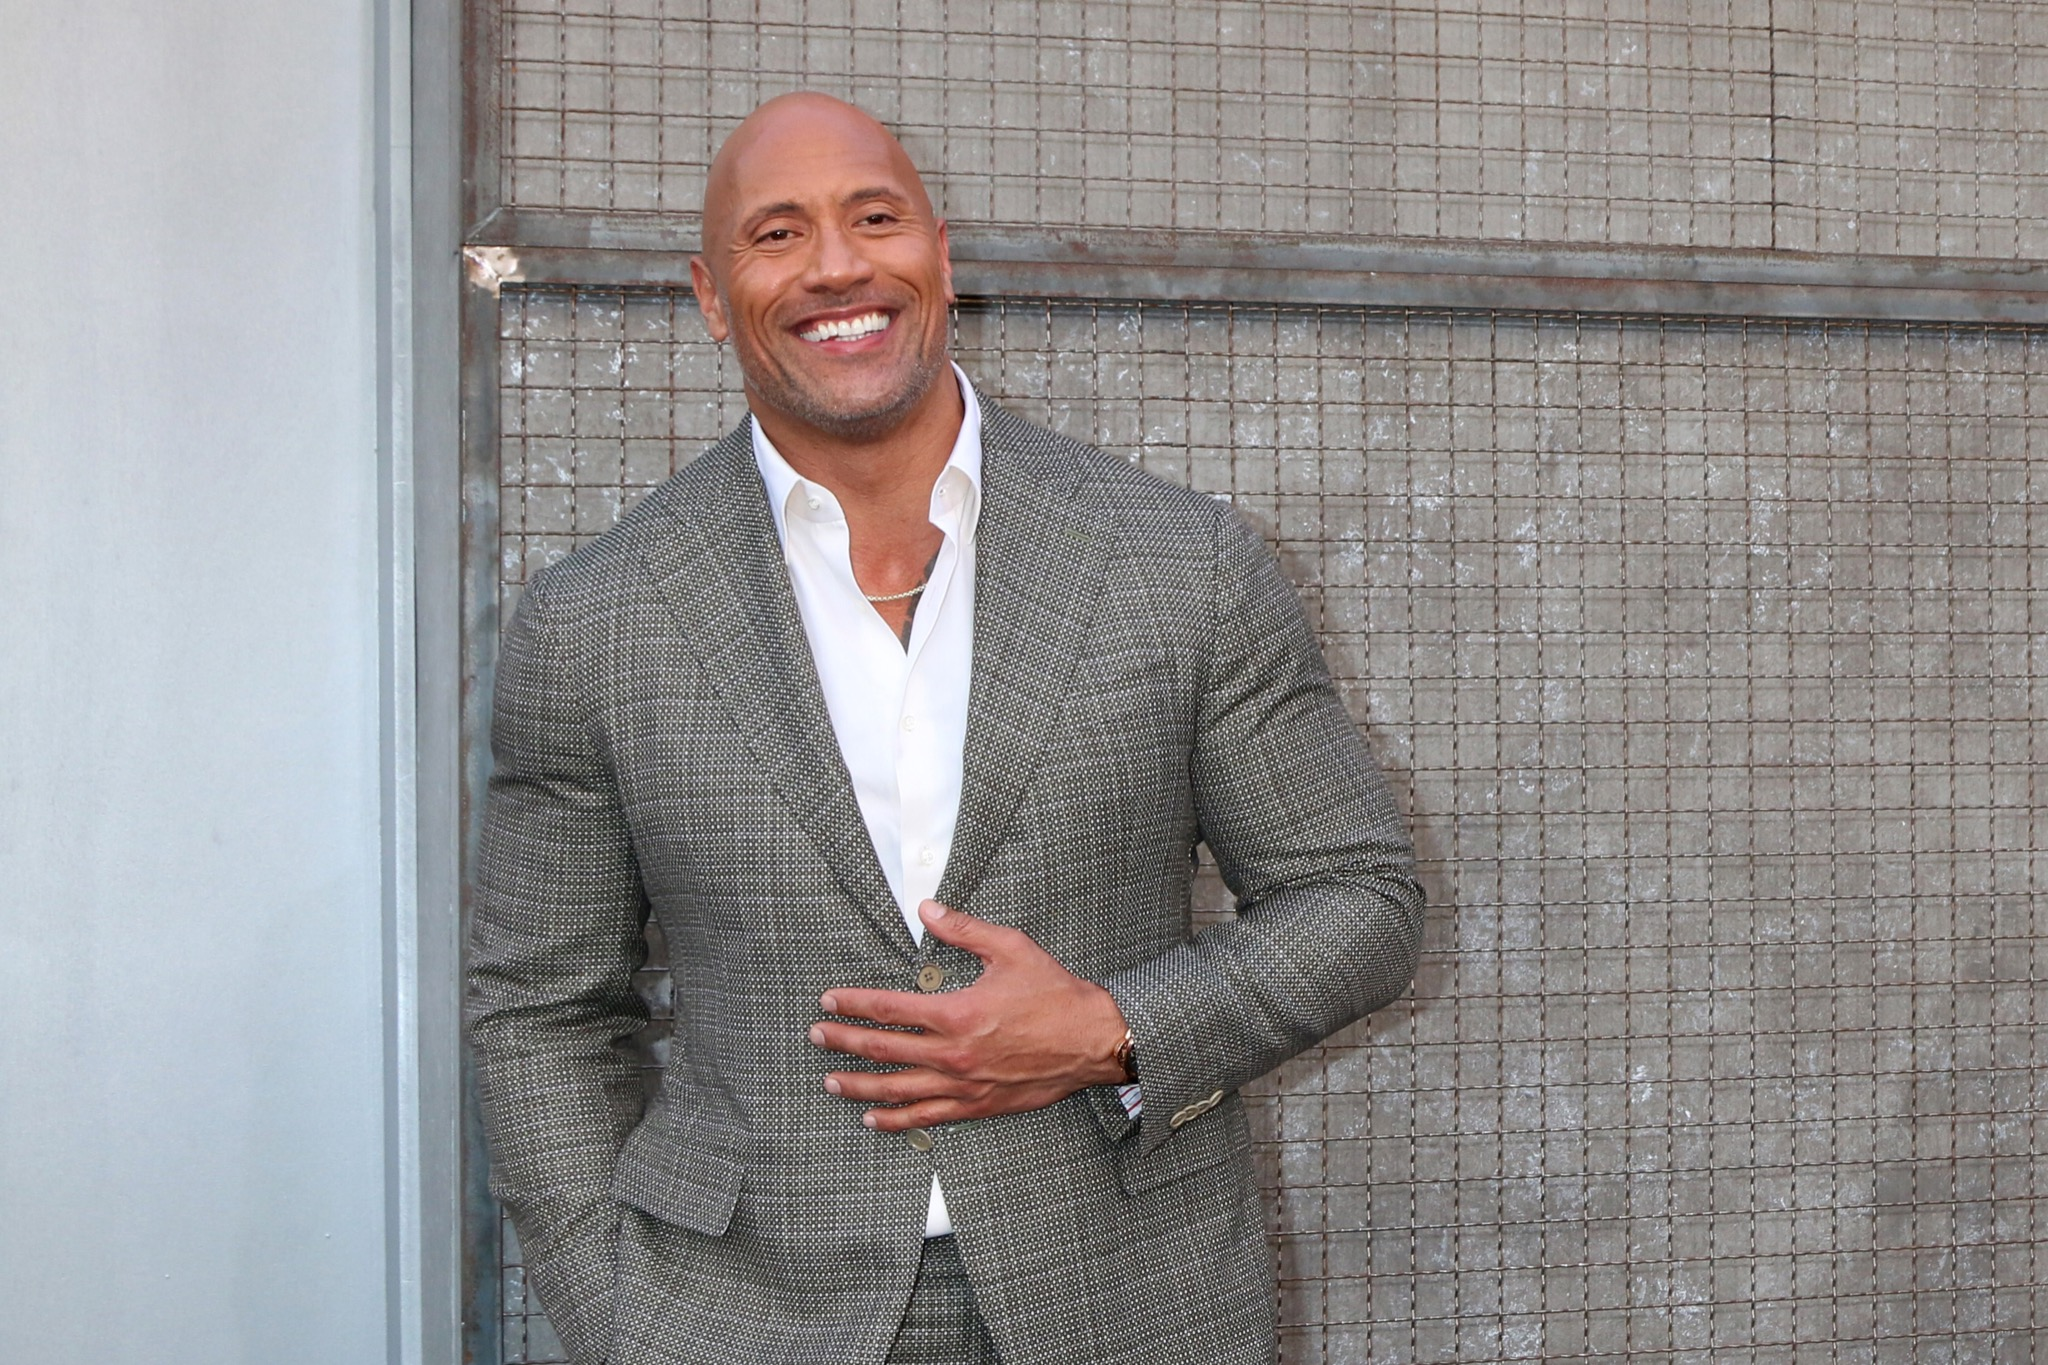 Dwayne 'The Rock' Johnson Remains Hollywood's Highest-Paid Actor